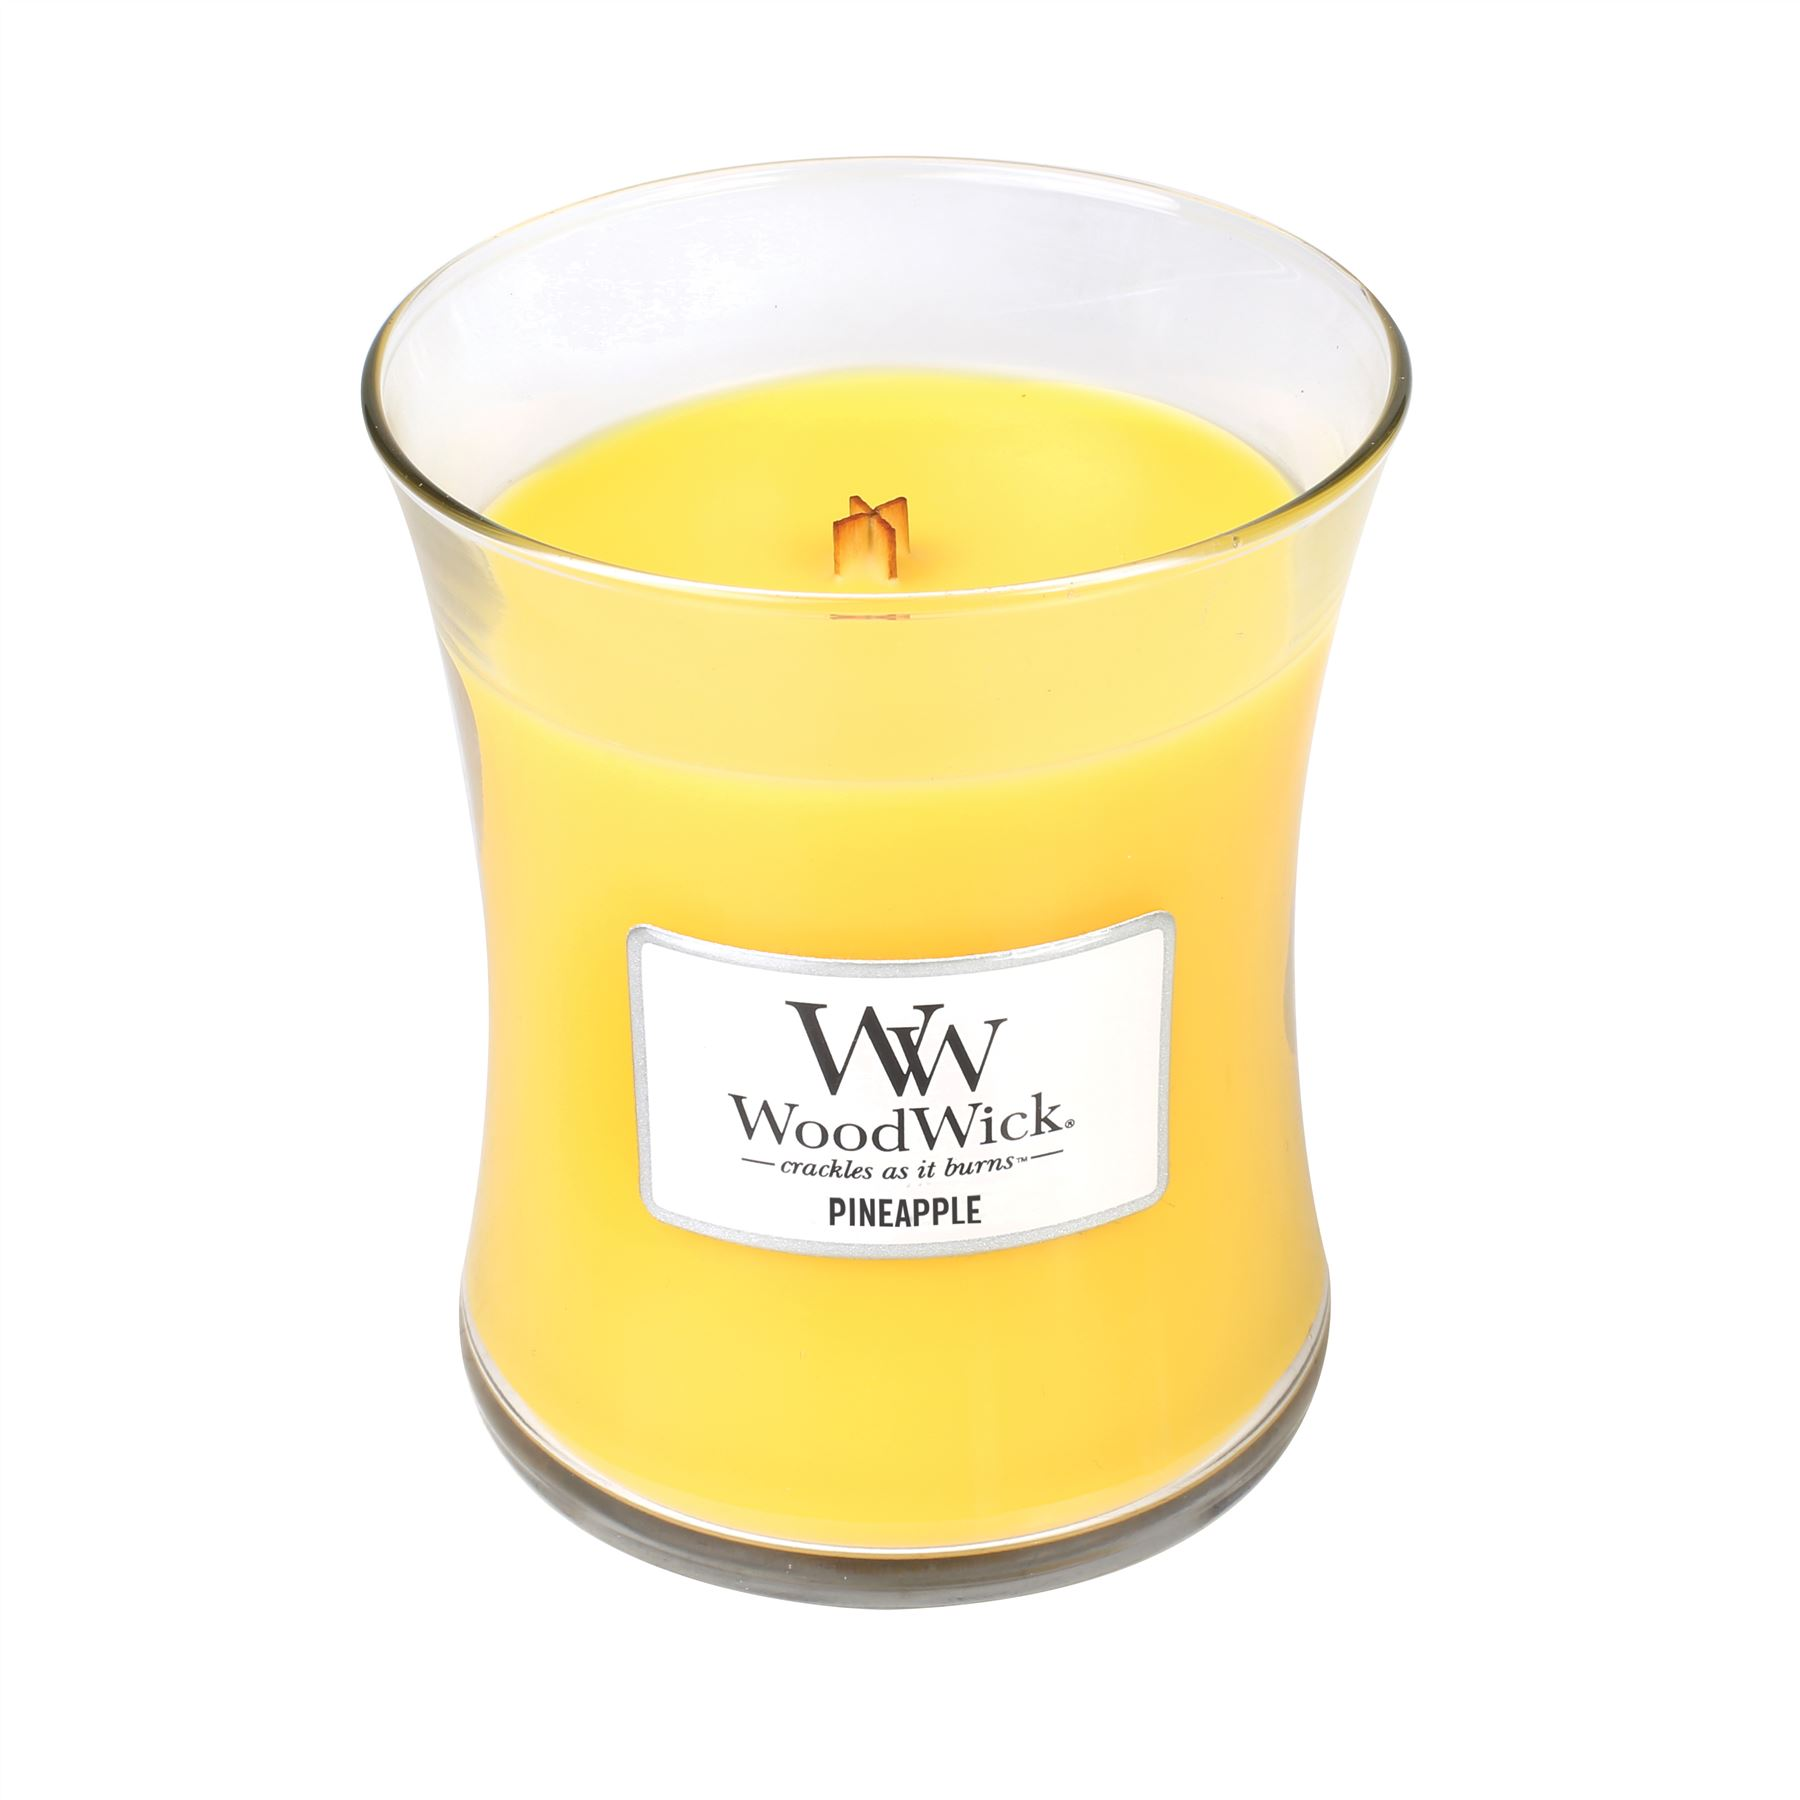 Woodwick-Hearthwick-Medium-Candle-Jar-10oz-Scented-Crackle-Fragrance-Home-Gift